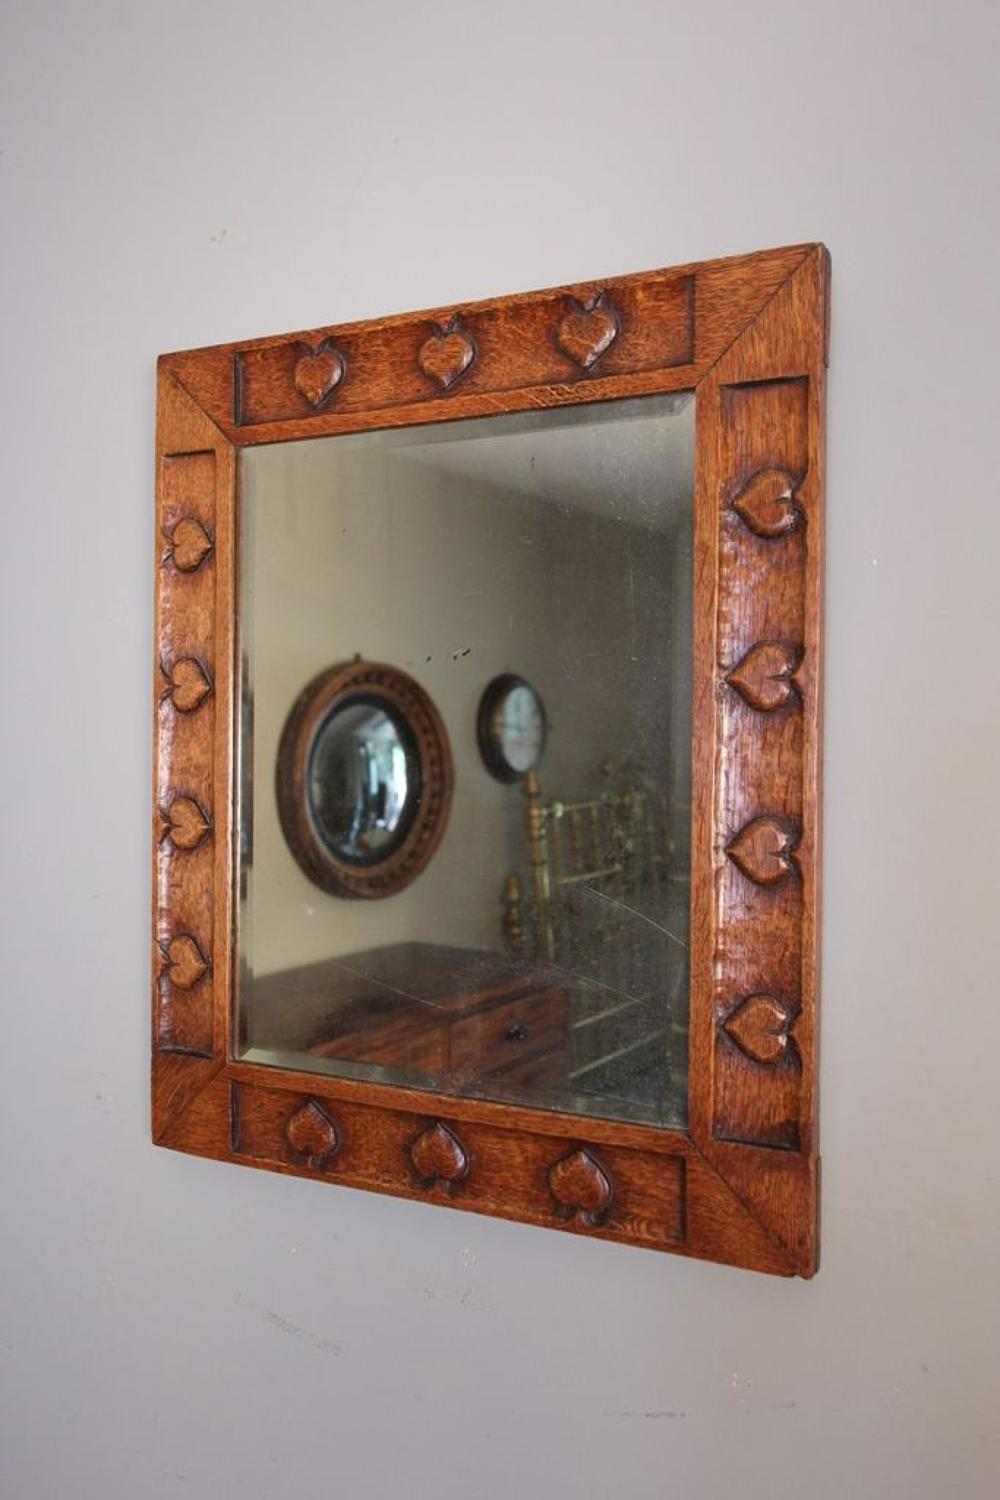 Charming Arts & Crafts Wall Mirror